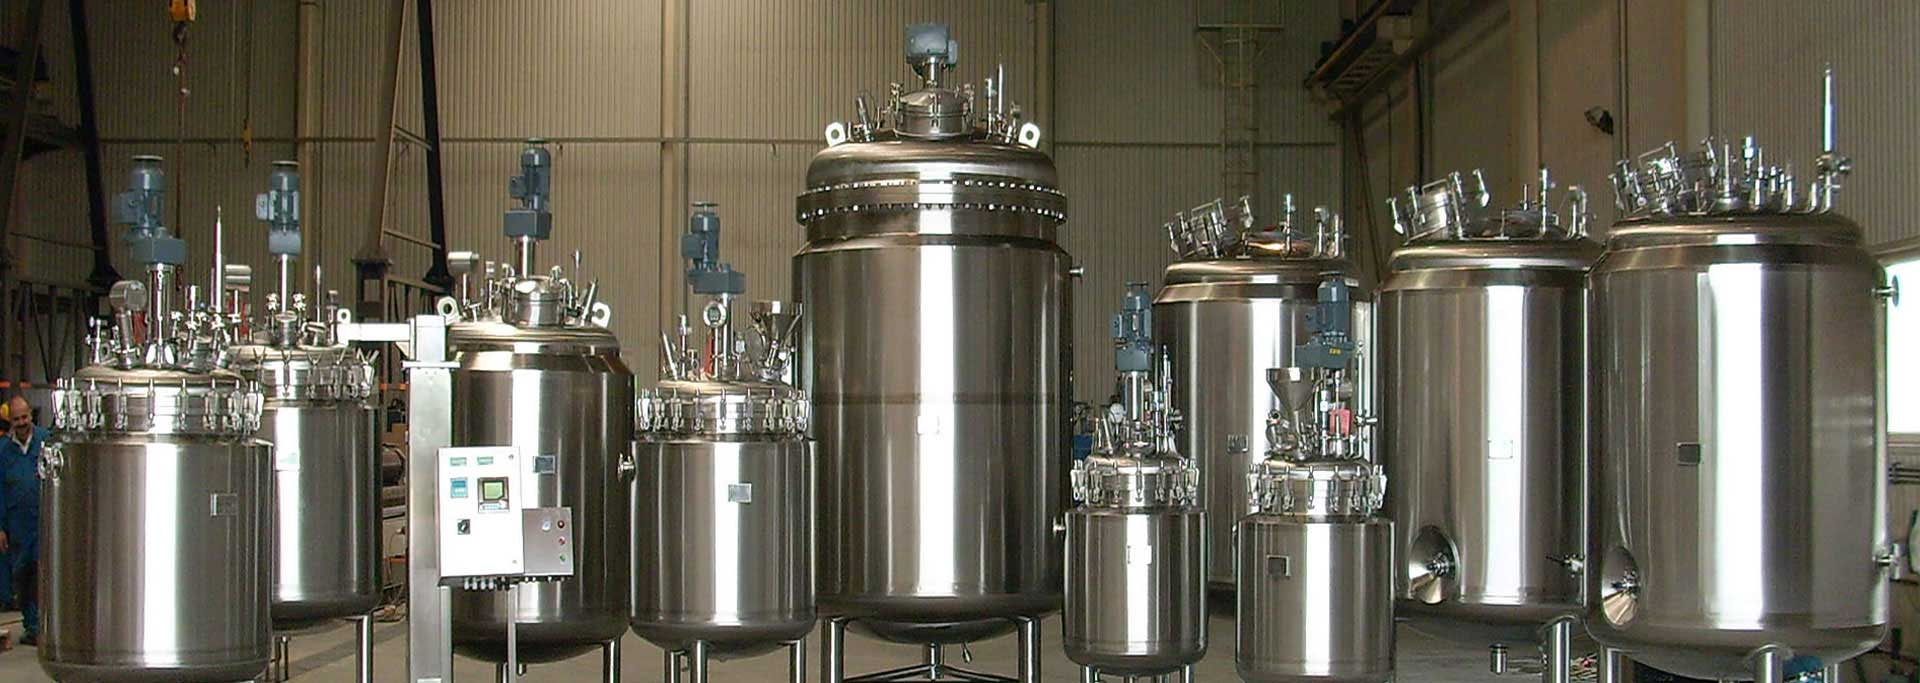 Stainless Steel Mixing Tank And Vessels